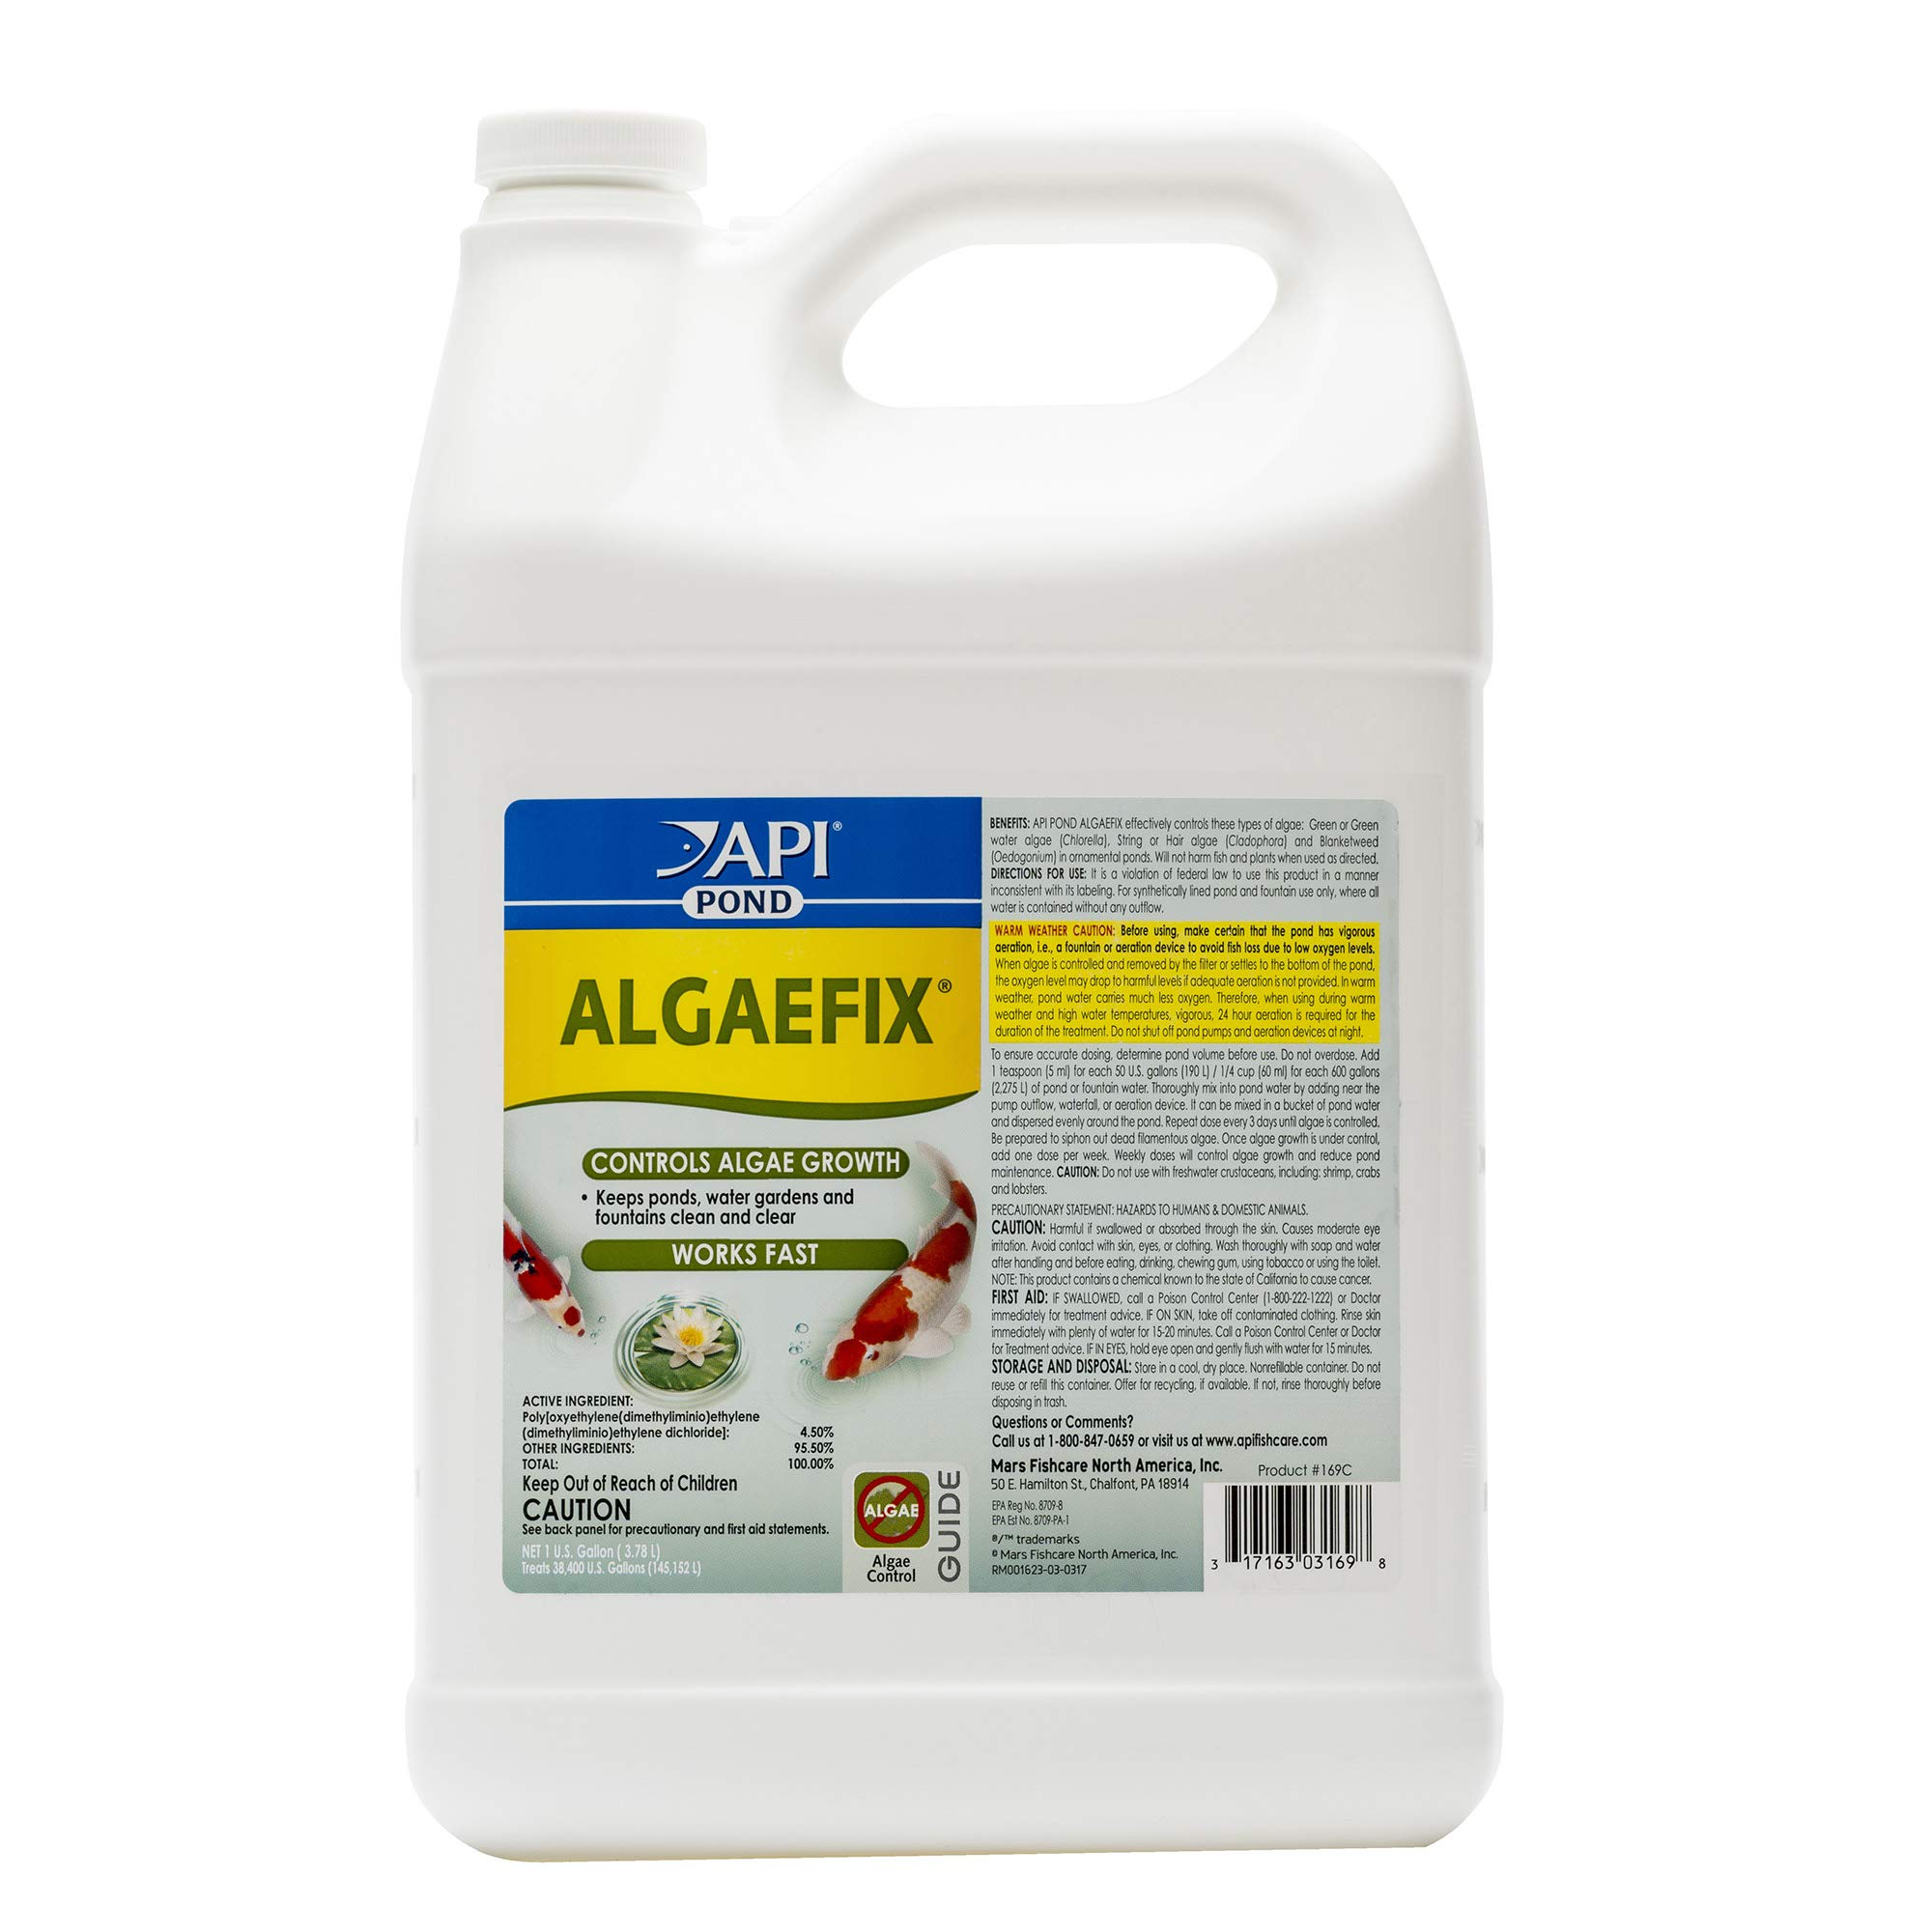 API Pond Algaefix Algae Control Solution 1 gallon Bottle by API